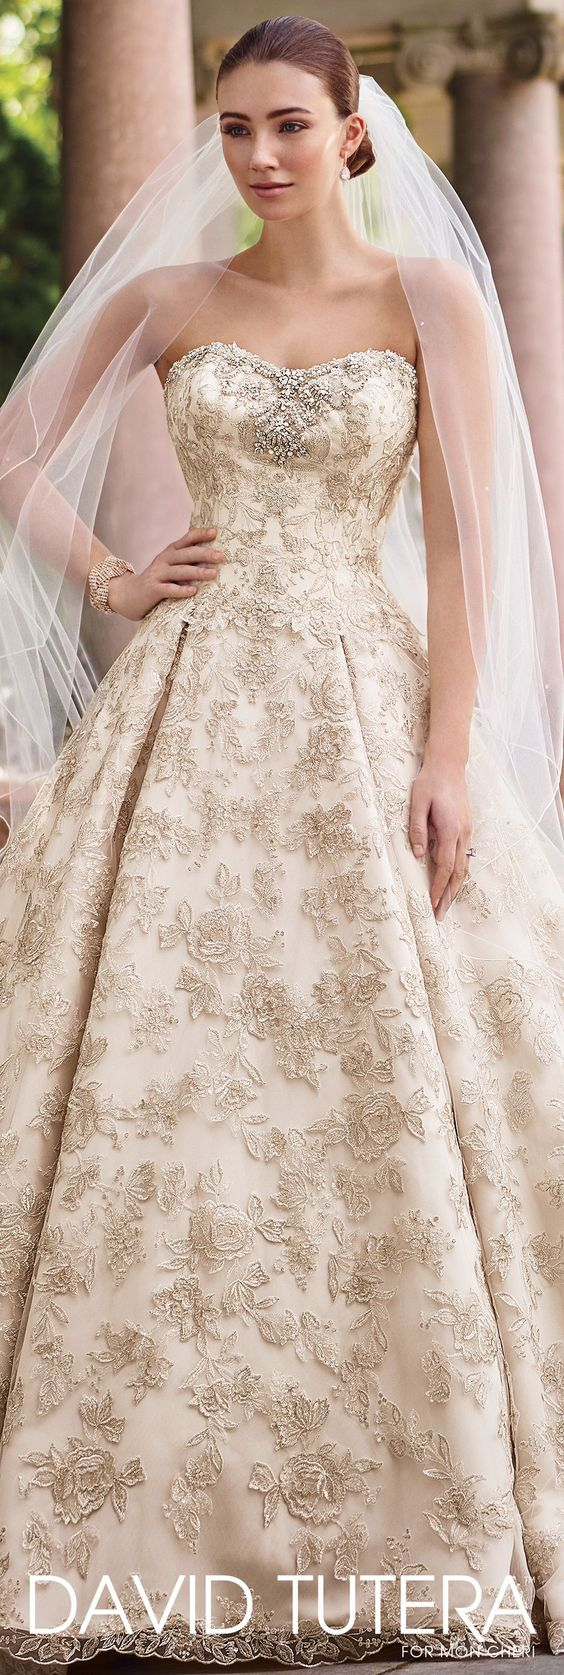 David Tutera for Mon Cheri Spring 2017 Collection - Style No. 117274 Gilda - strapless gold metallic lace ball gown wedding dress